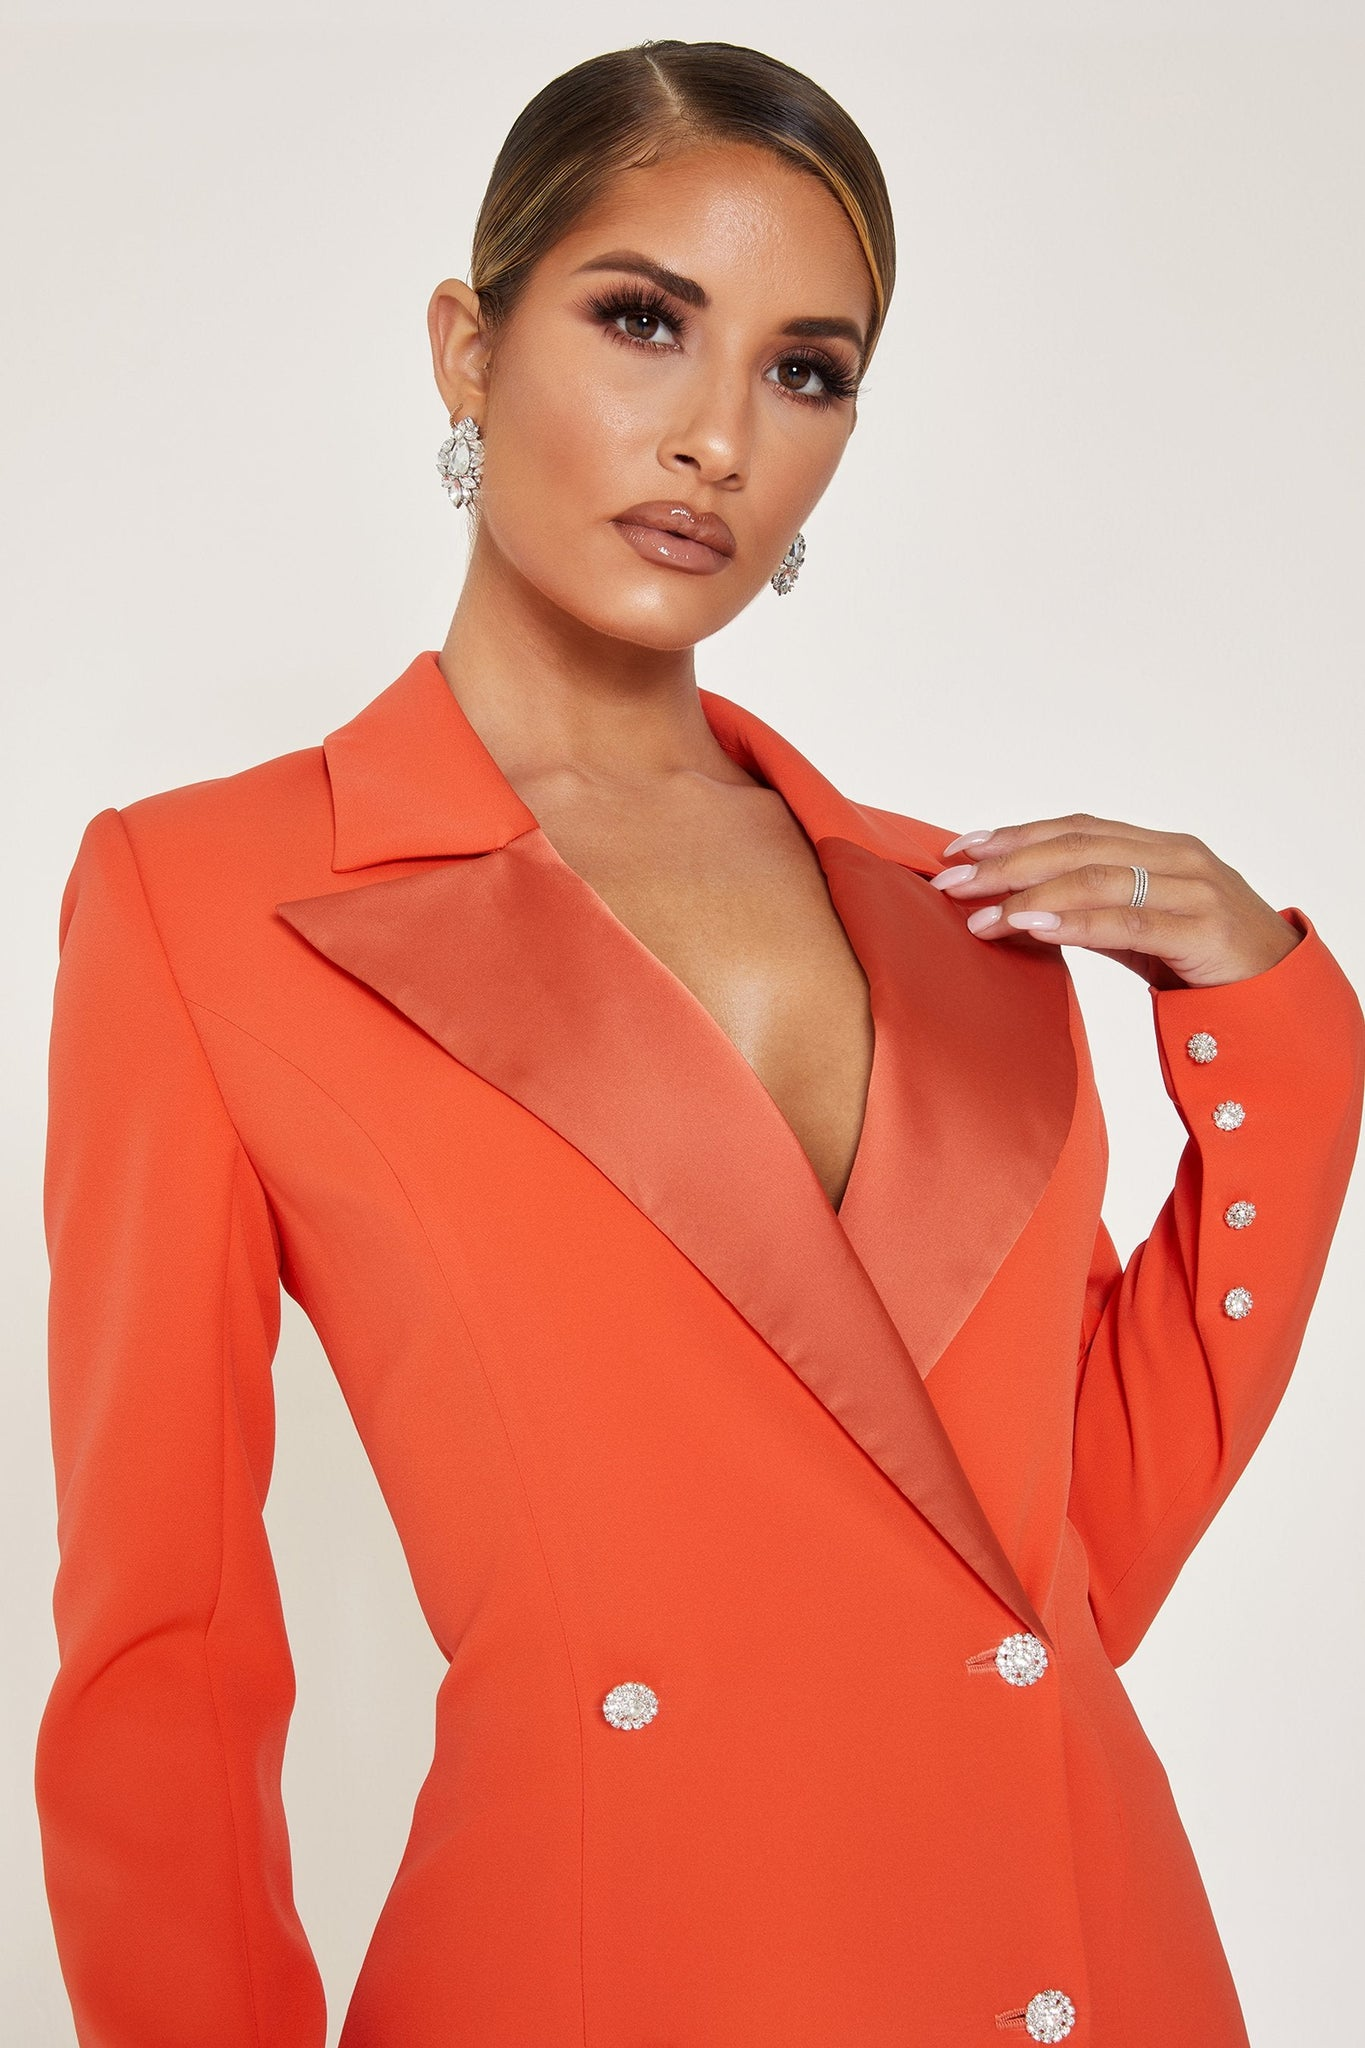 Rebekah Contrast Lapel Double Breasted Blazer Dress - Orange - MESHKI